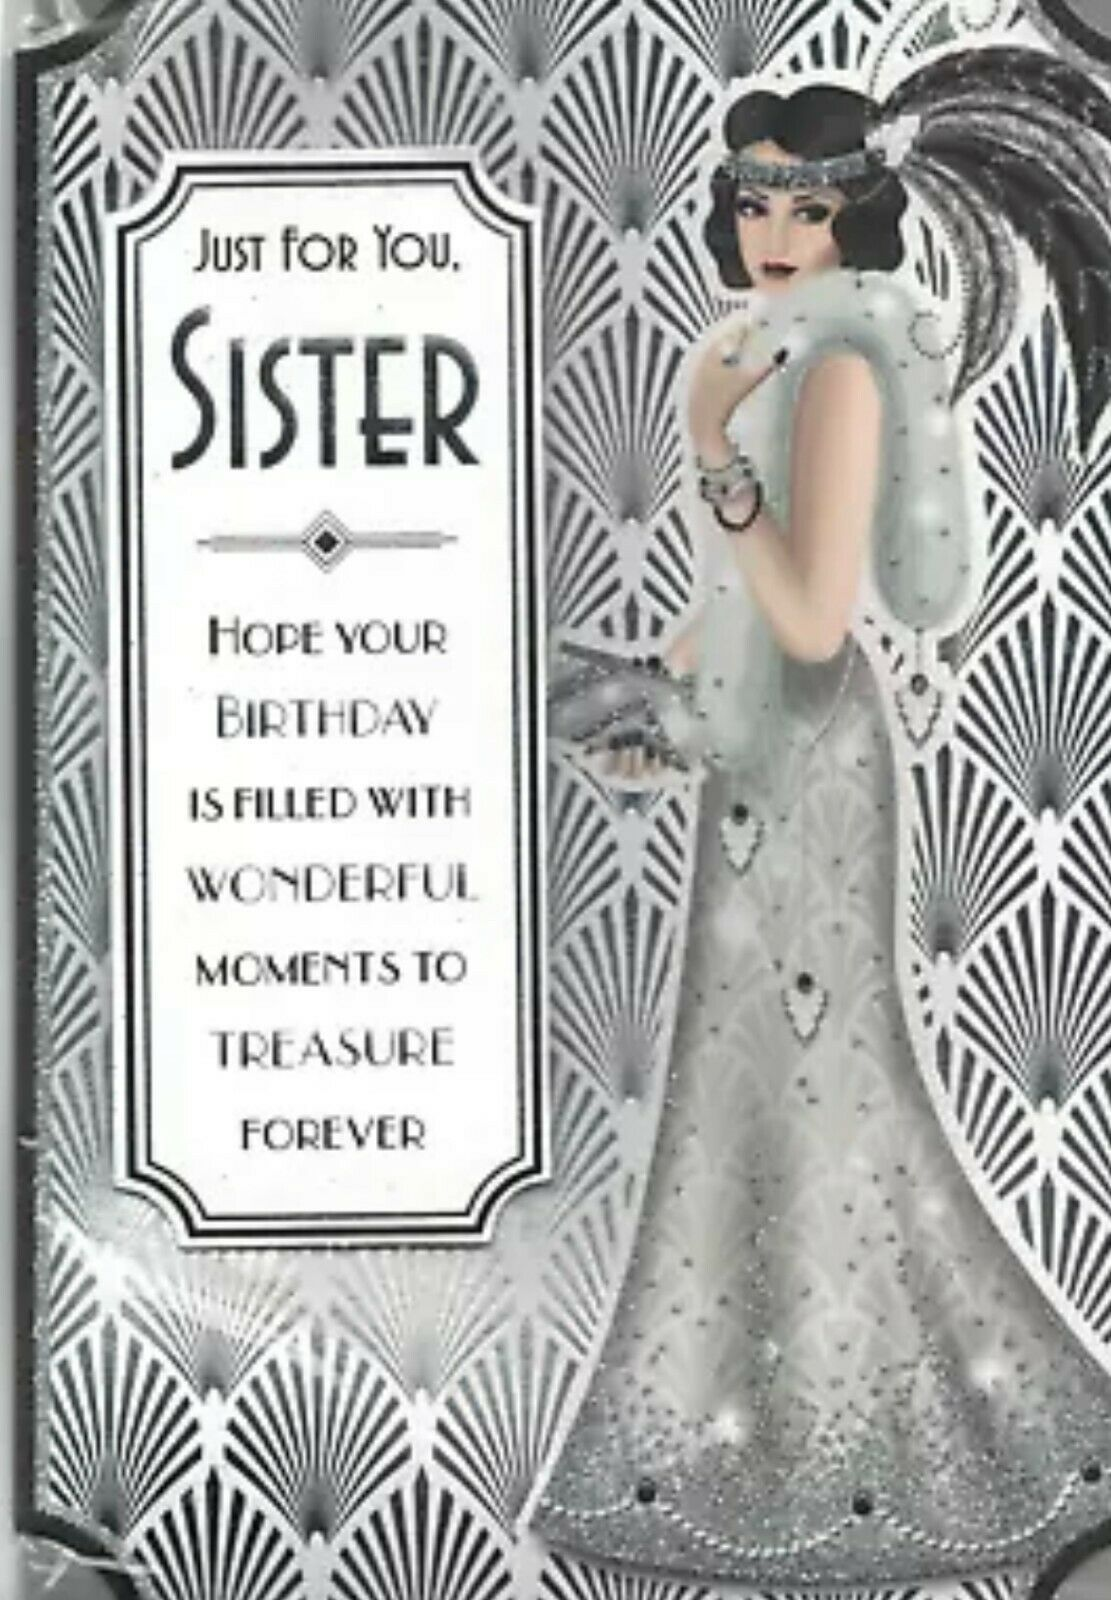 Art Deco Style Birthday Card - Just For You, Sister